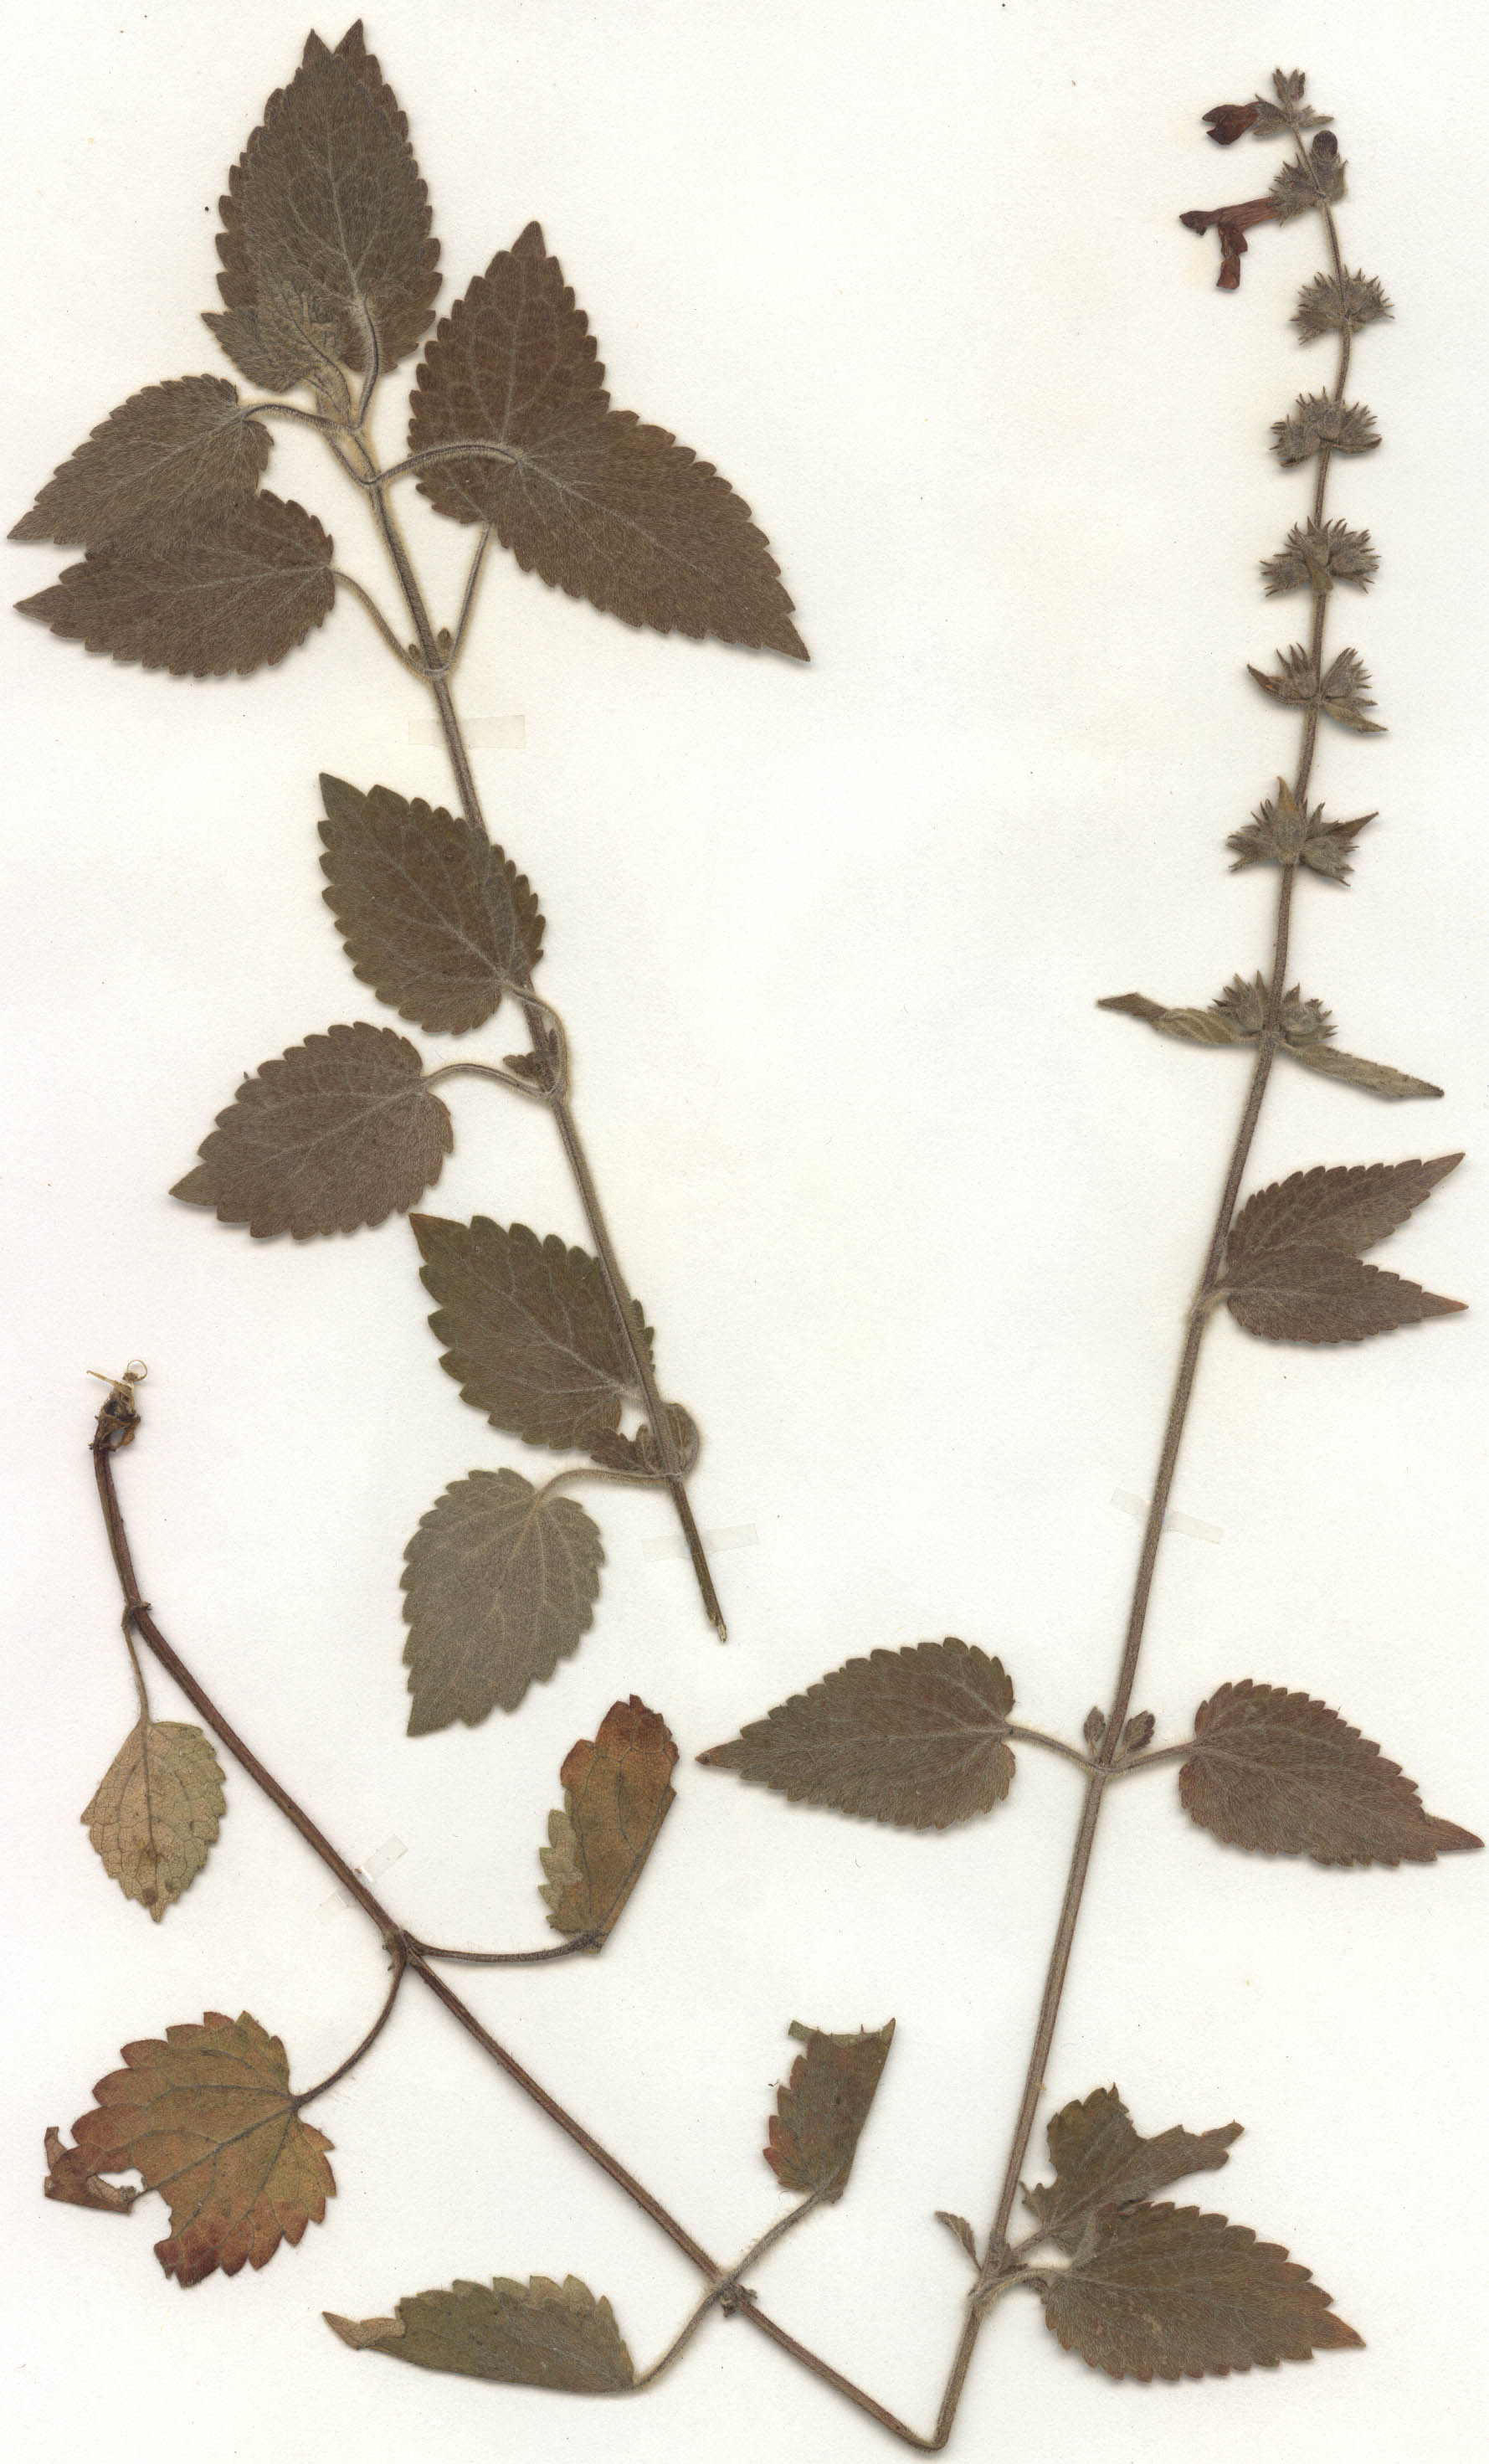 Image of Hedge Woundwort